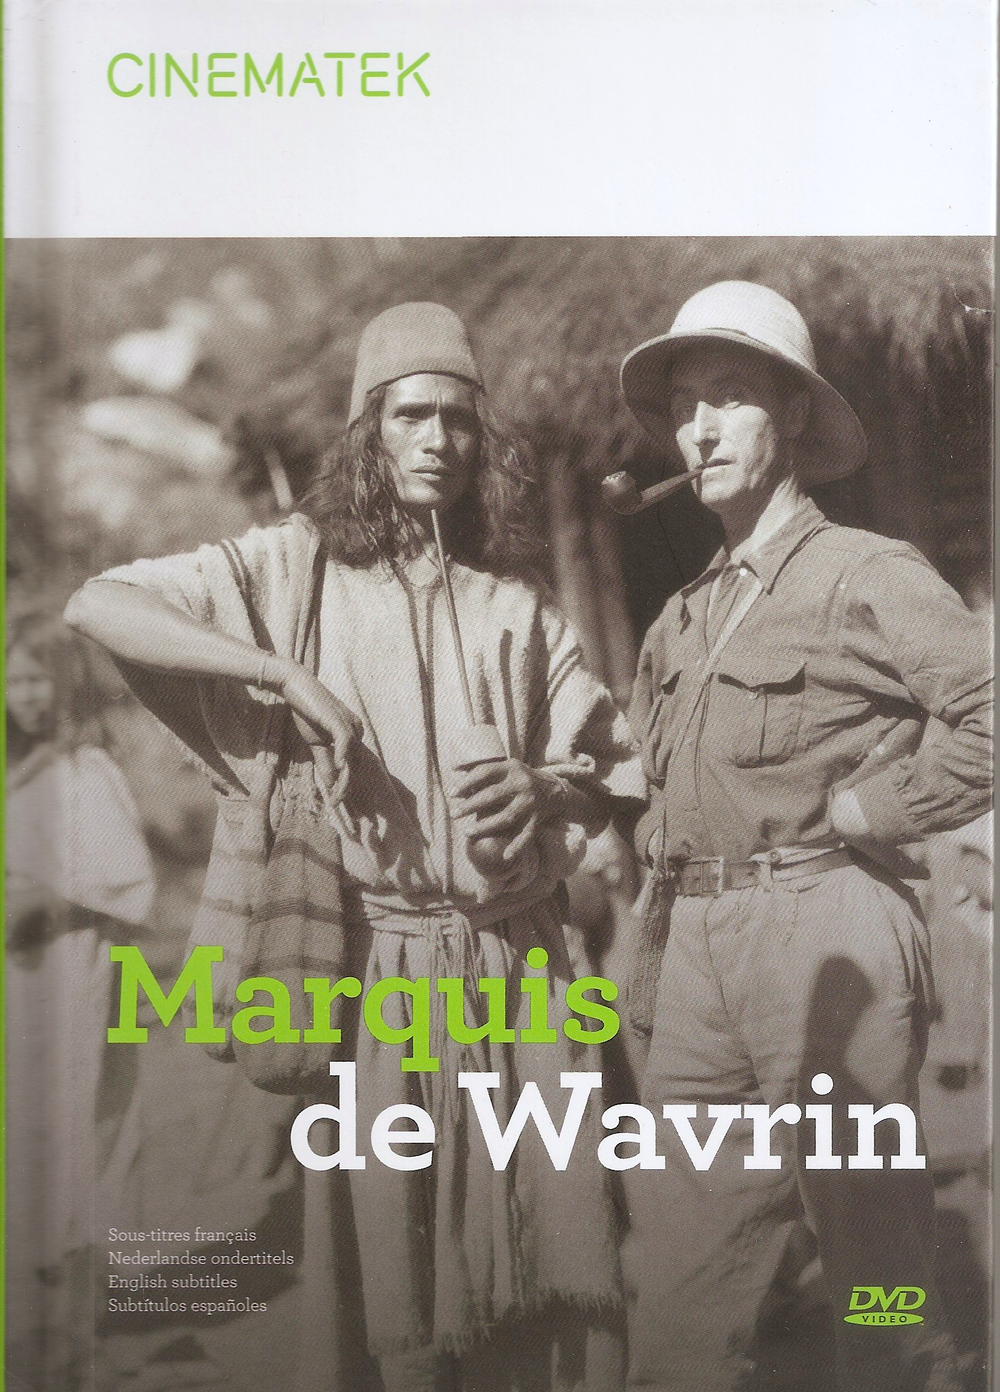 Ostend marquis de wavrin 300.png